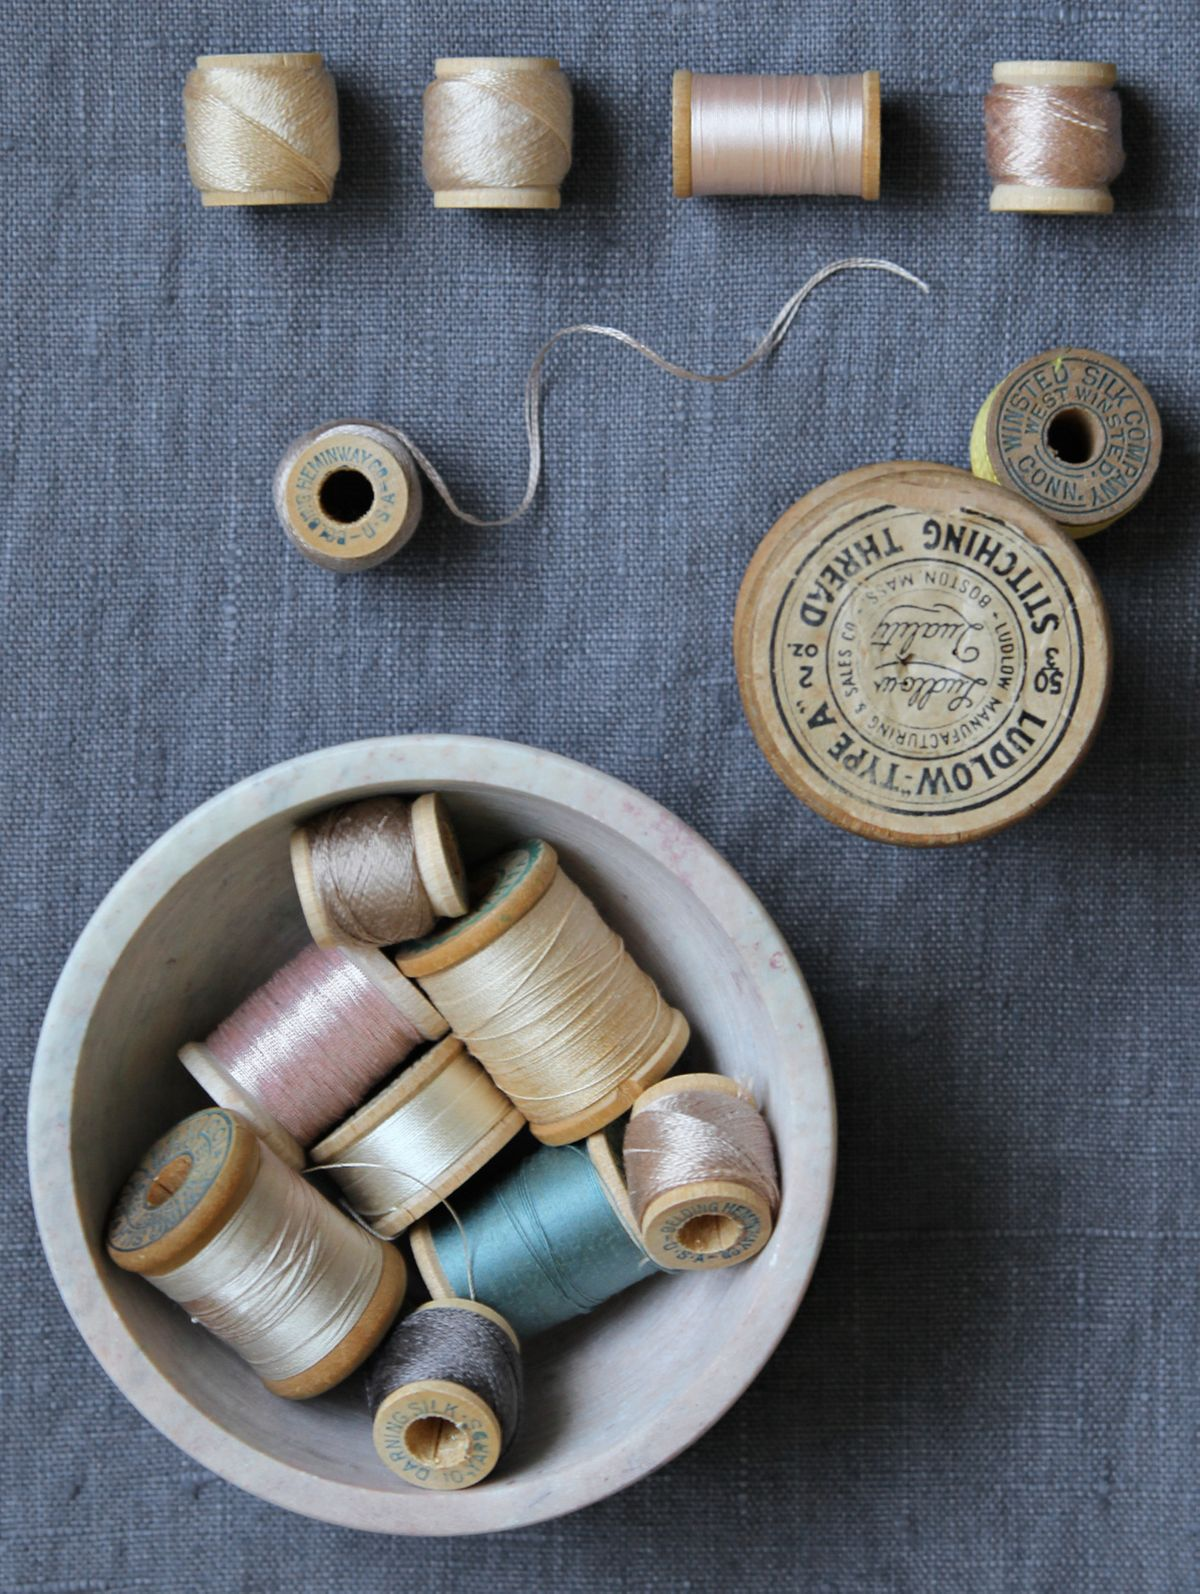 21 sewing-happiness-vintage-thread.jpg